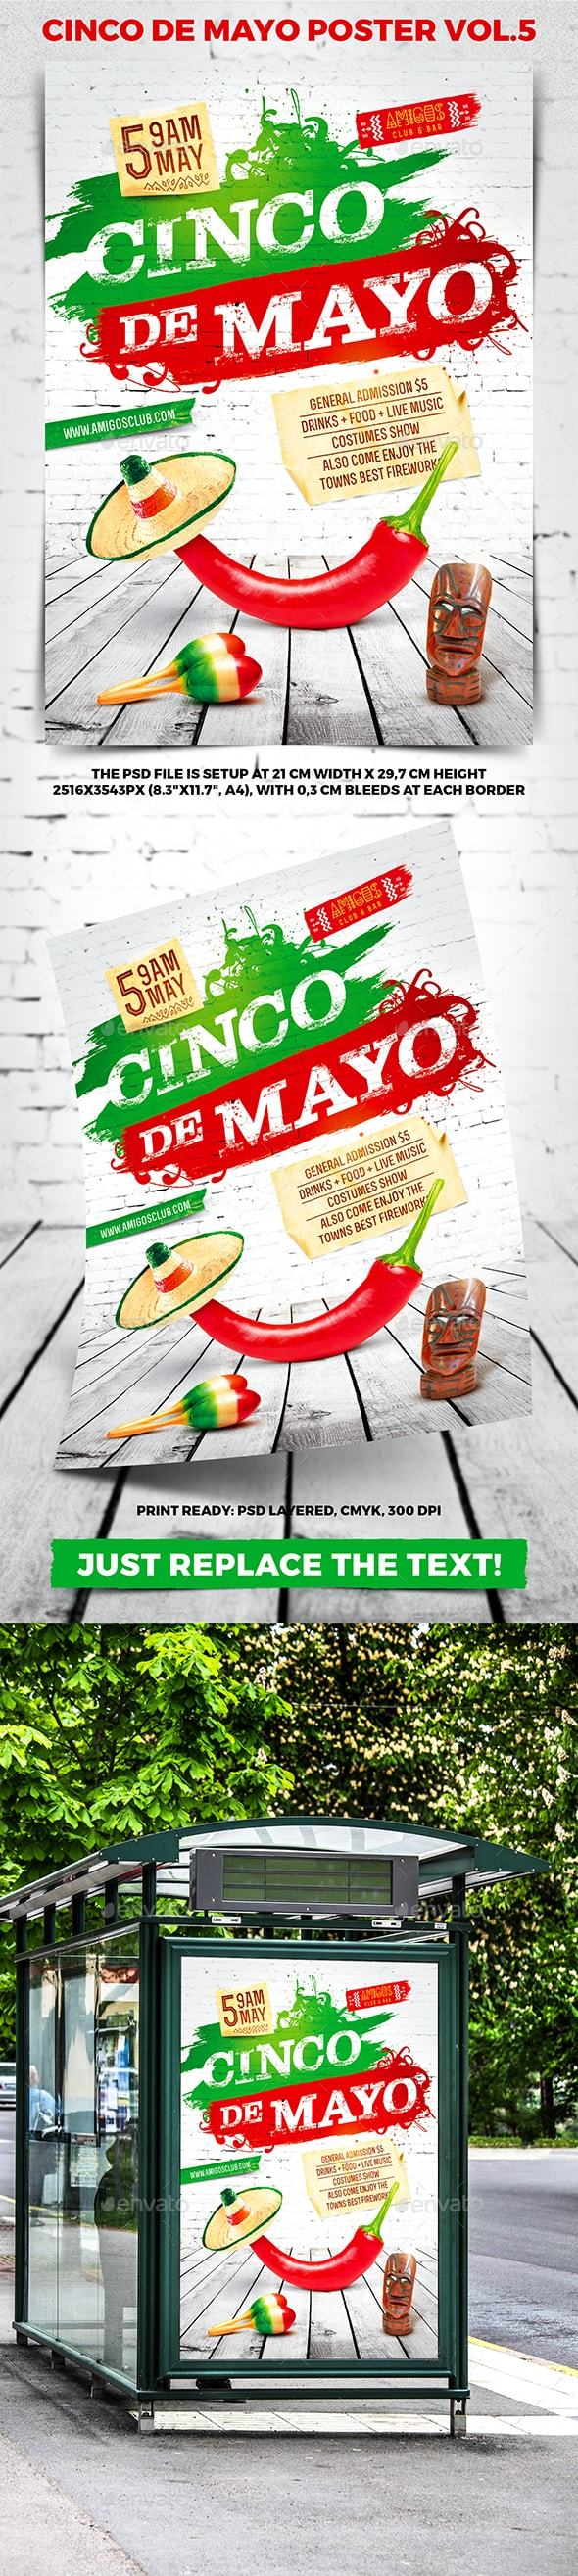 Cinco de Mayo Party Poster vol.5 - Holidays Events